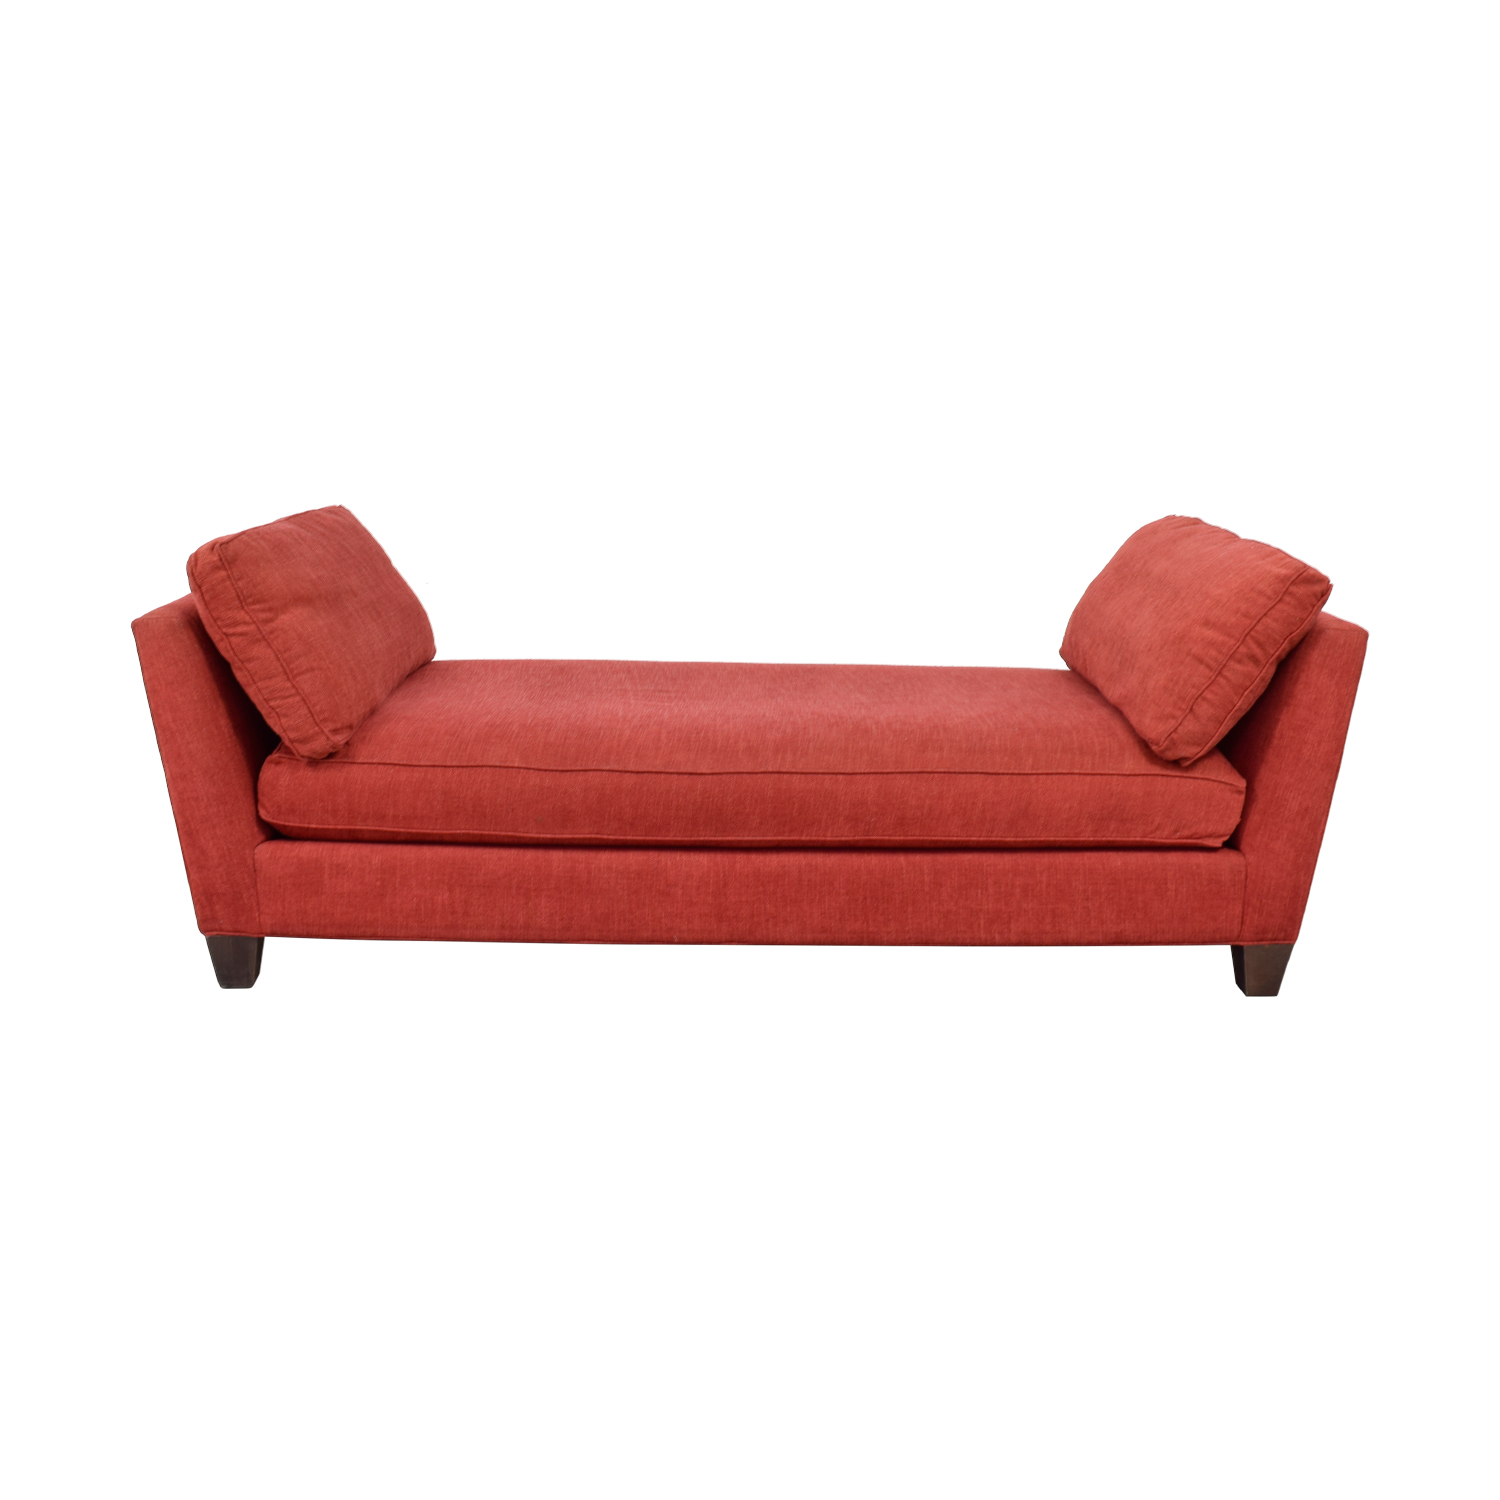 Crate & Barrel Marlowe Red Chaise / Chaises